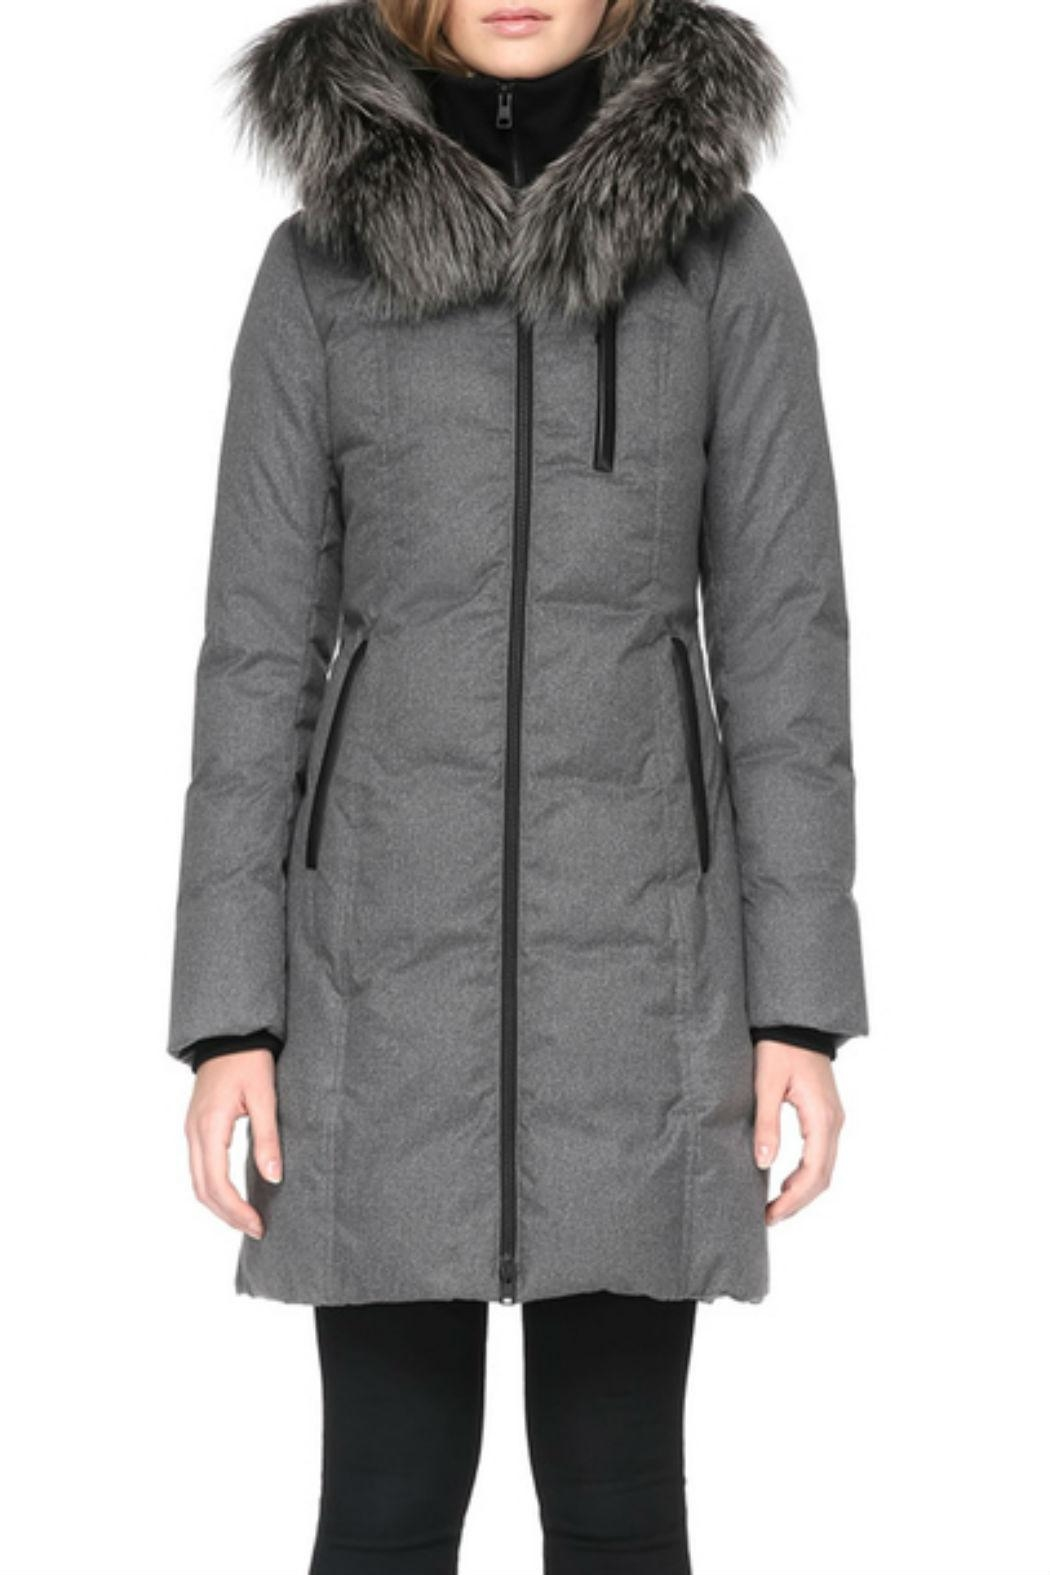 Soia & Kyo Chrissy-Fx Down Coat - Front Cropped Image